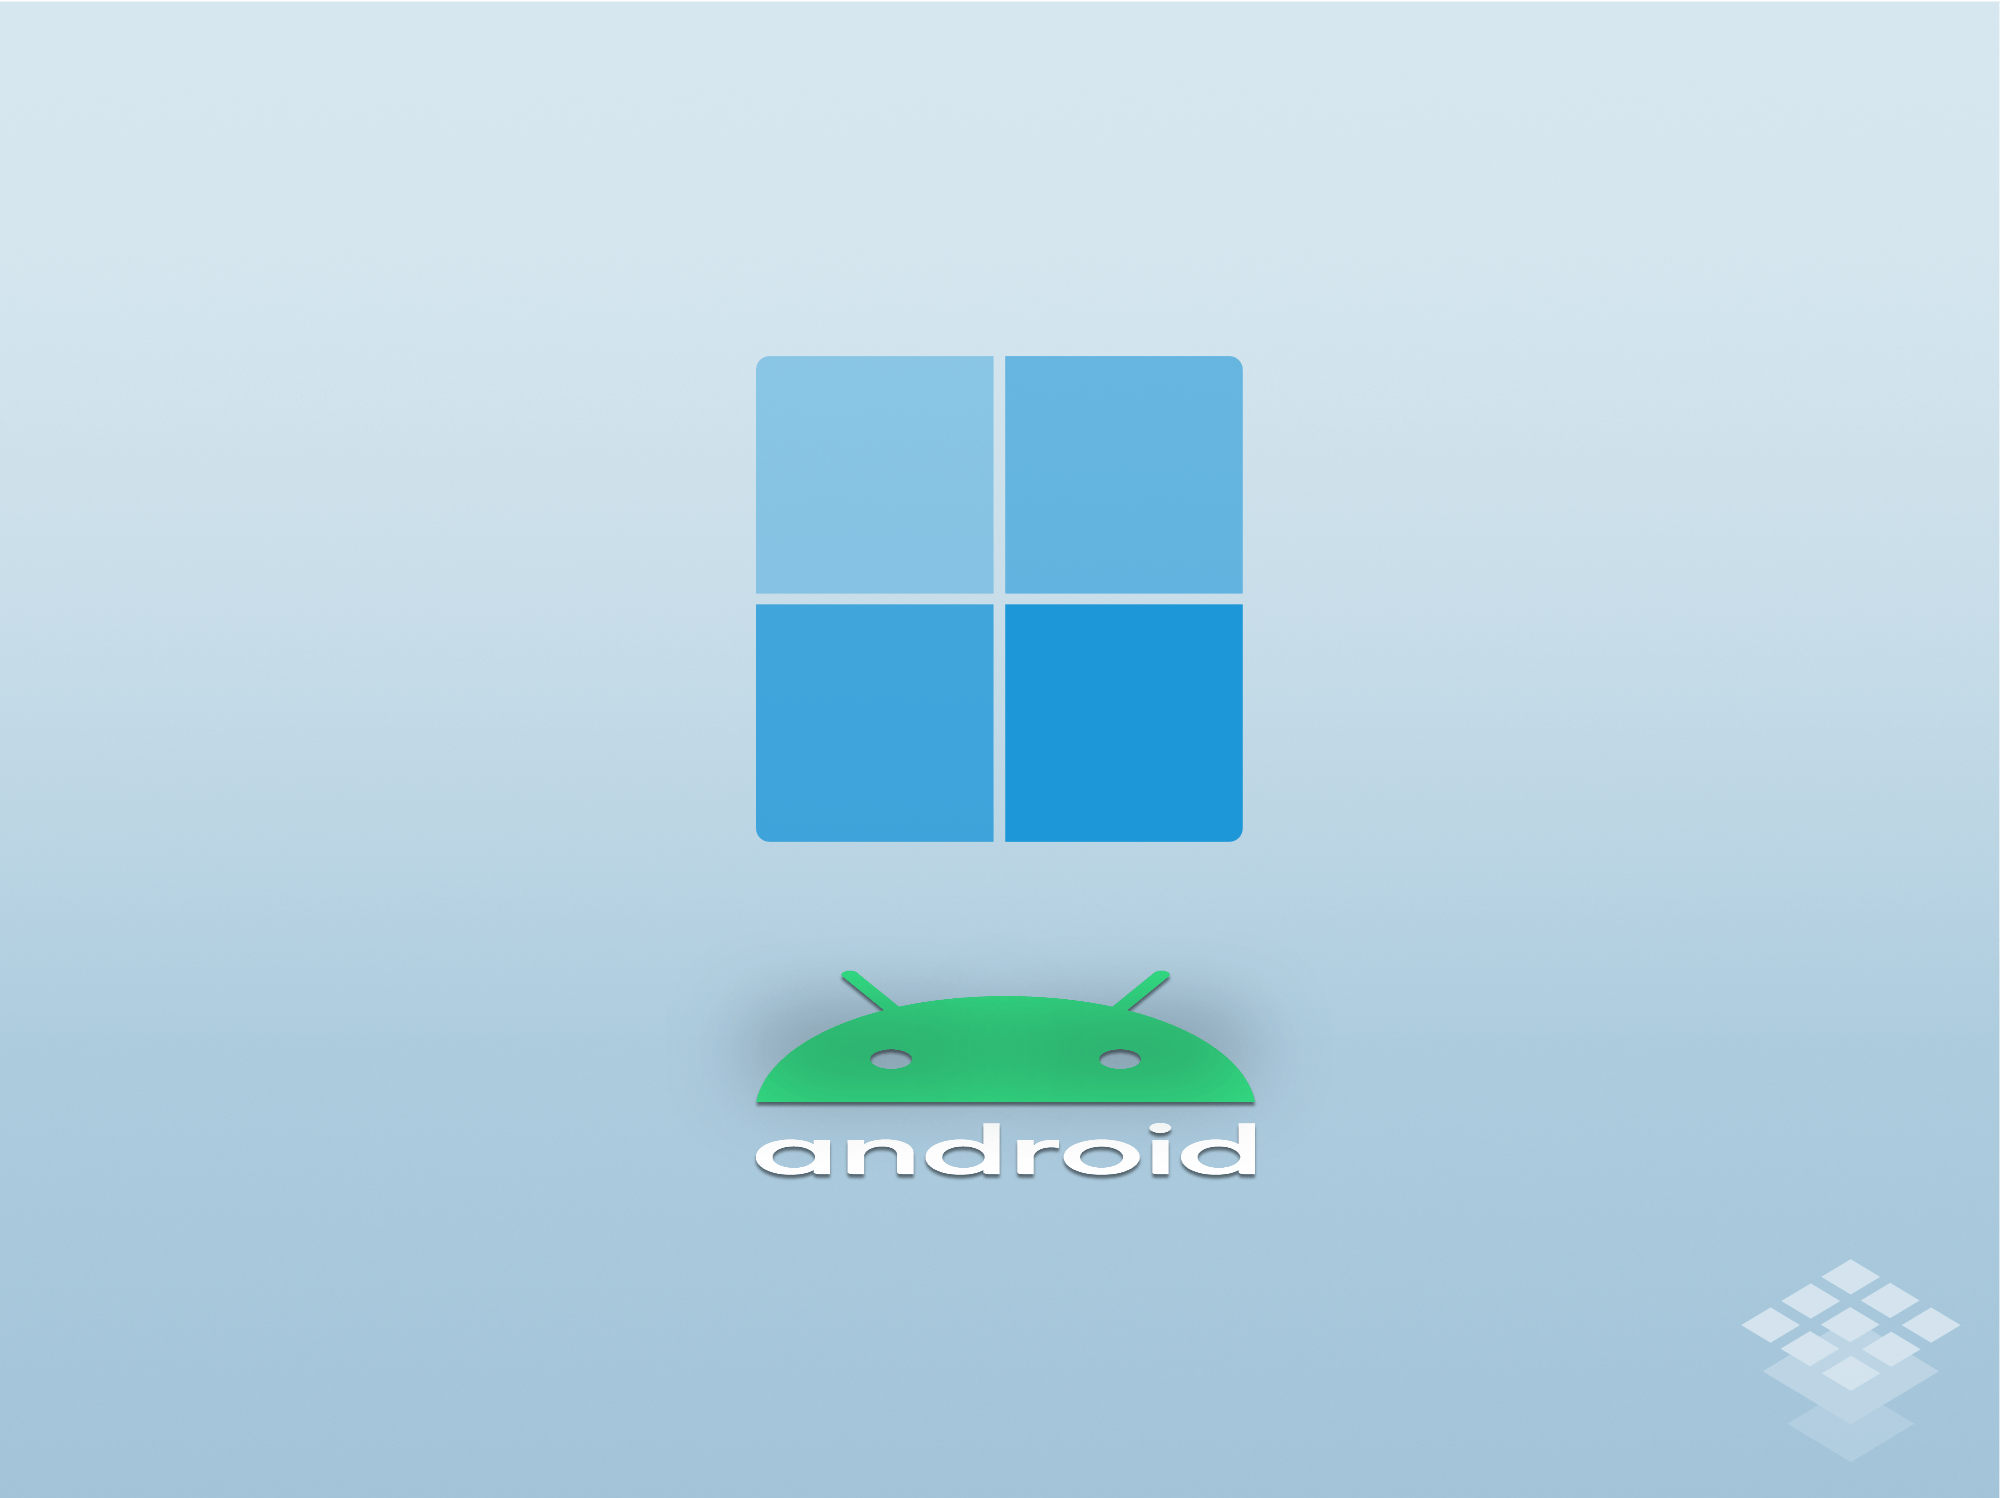 Windows 11 will launch without Android app support on October 5th